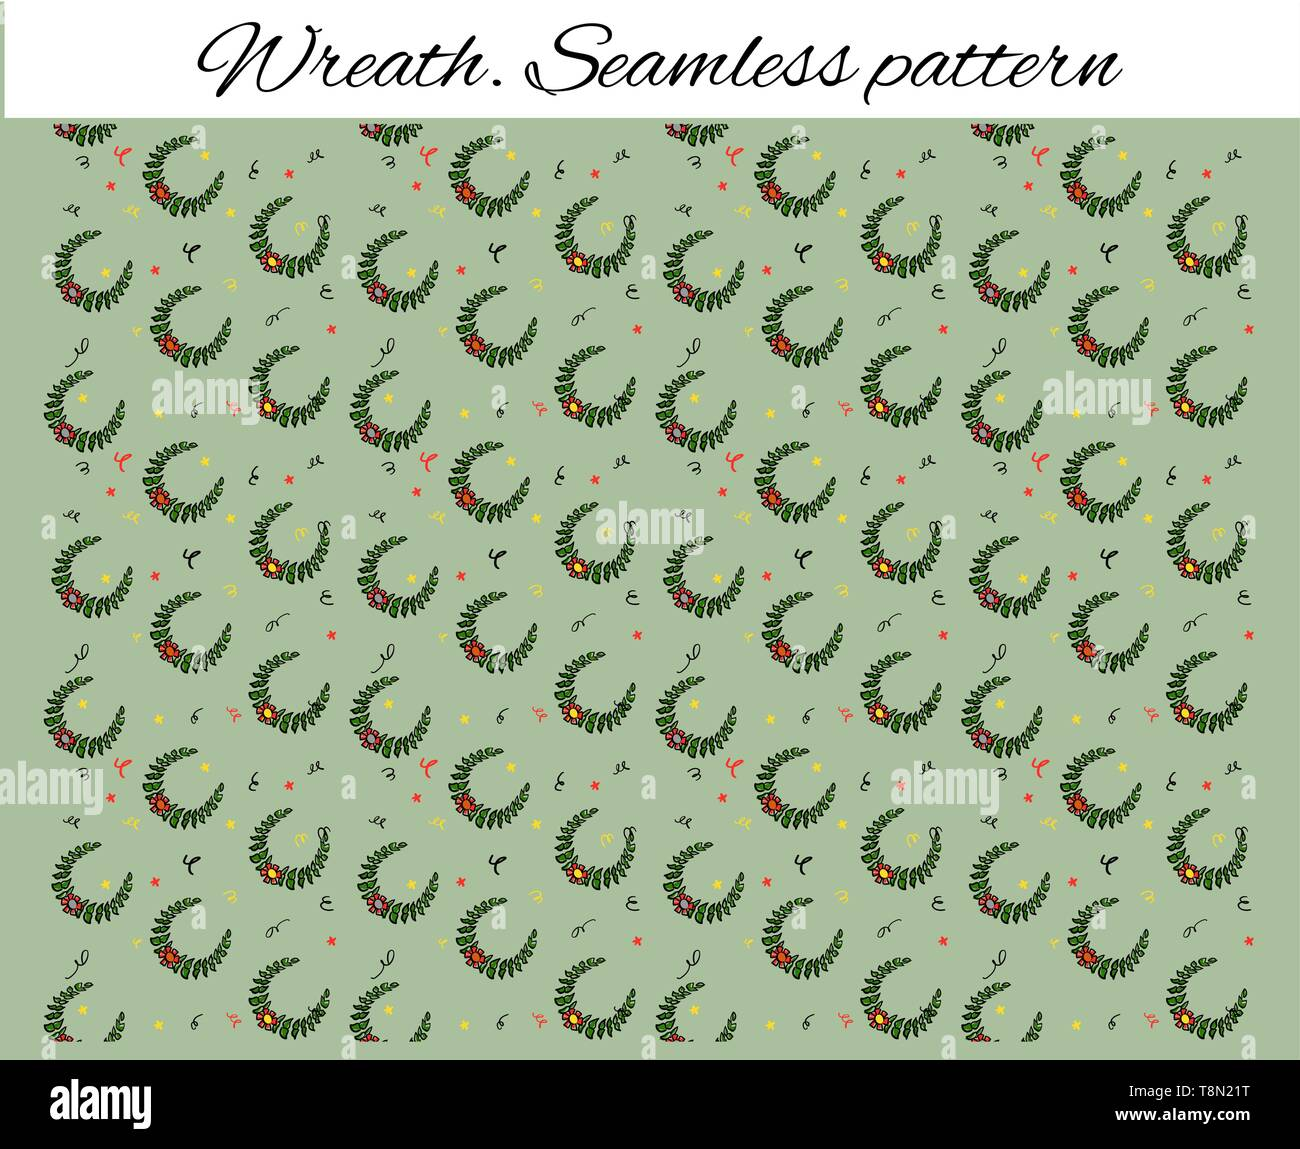 Seamless pattern with decorative wreaths and confetti. Cute drawing in the style of a sketch. Vector illustration for sports booklet. Backdrop for - Stock Vector